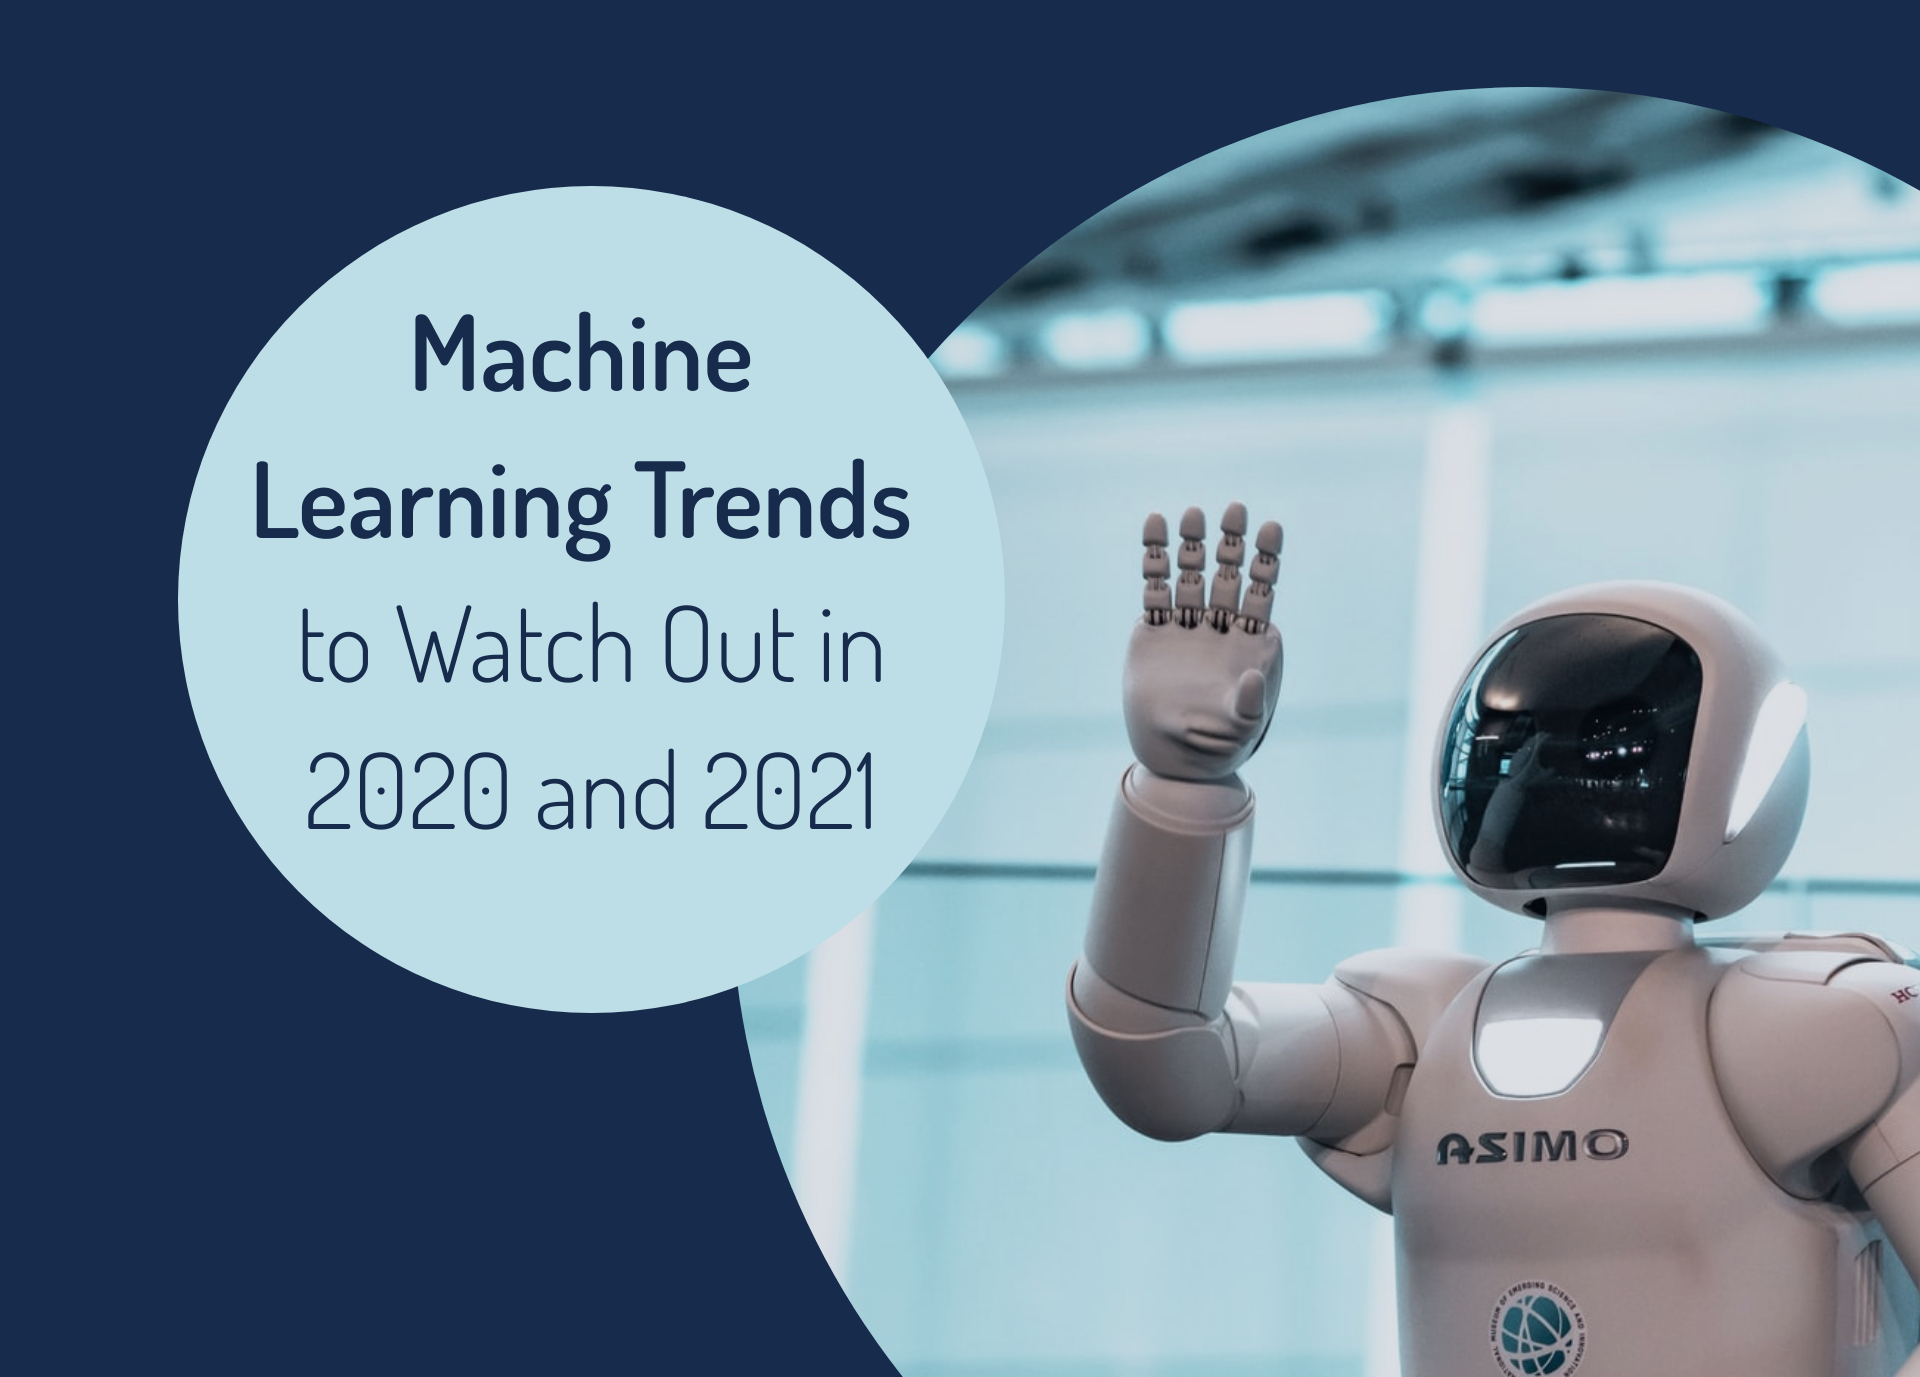 Machine Learning Trends to Watch Out in 2020 and 2021